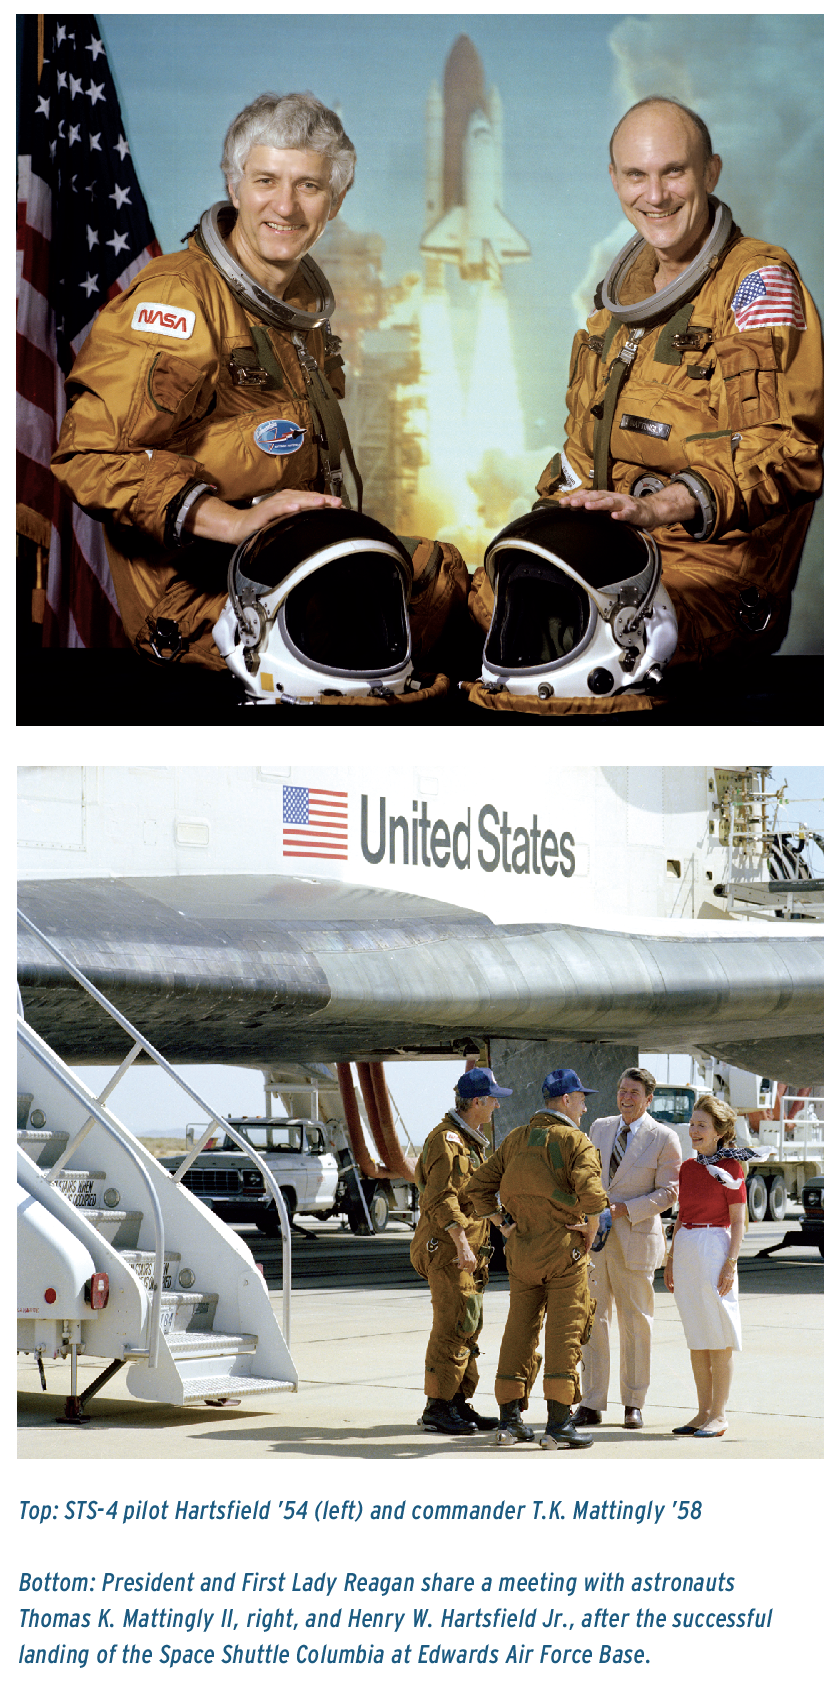 Top: STS-4 pilot Hartsfield '54 (left) and commander T.K. Mattingly '58 Bottom: President and First Lady Reagan share a meeting with astronauts Thomas K. Mattingly II, right, and Henry W. Hartsfield Jr., after the successful landing of the Space Shuttle Columbia at Edwards Air Force Base.